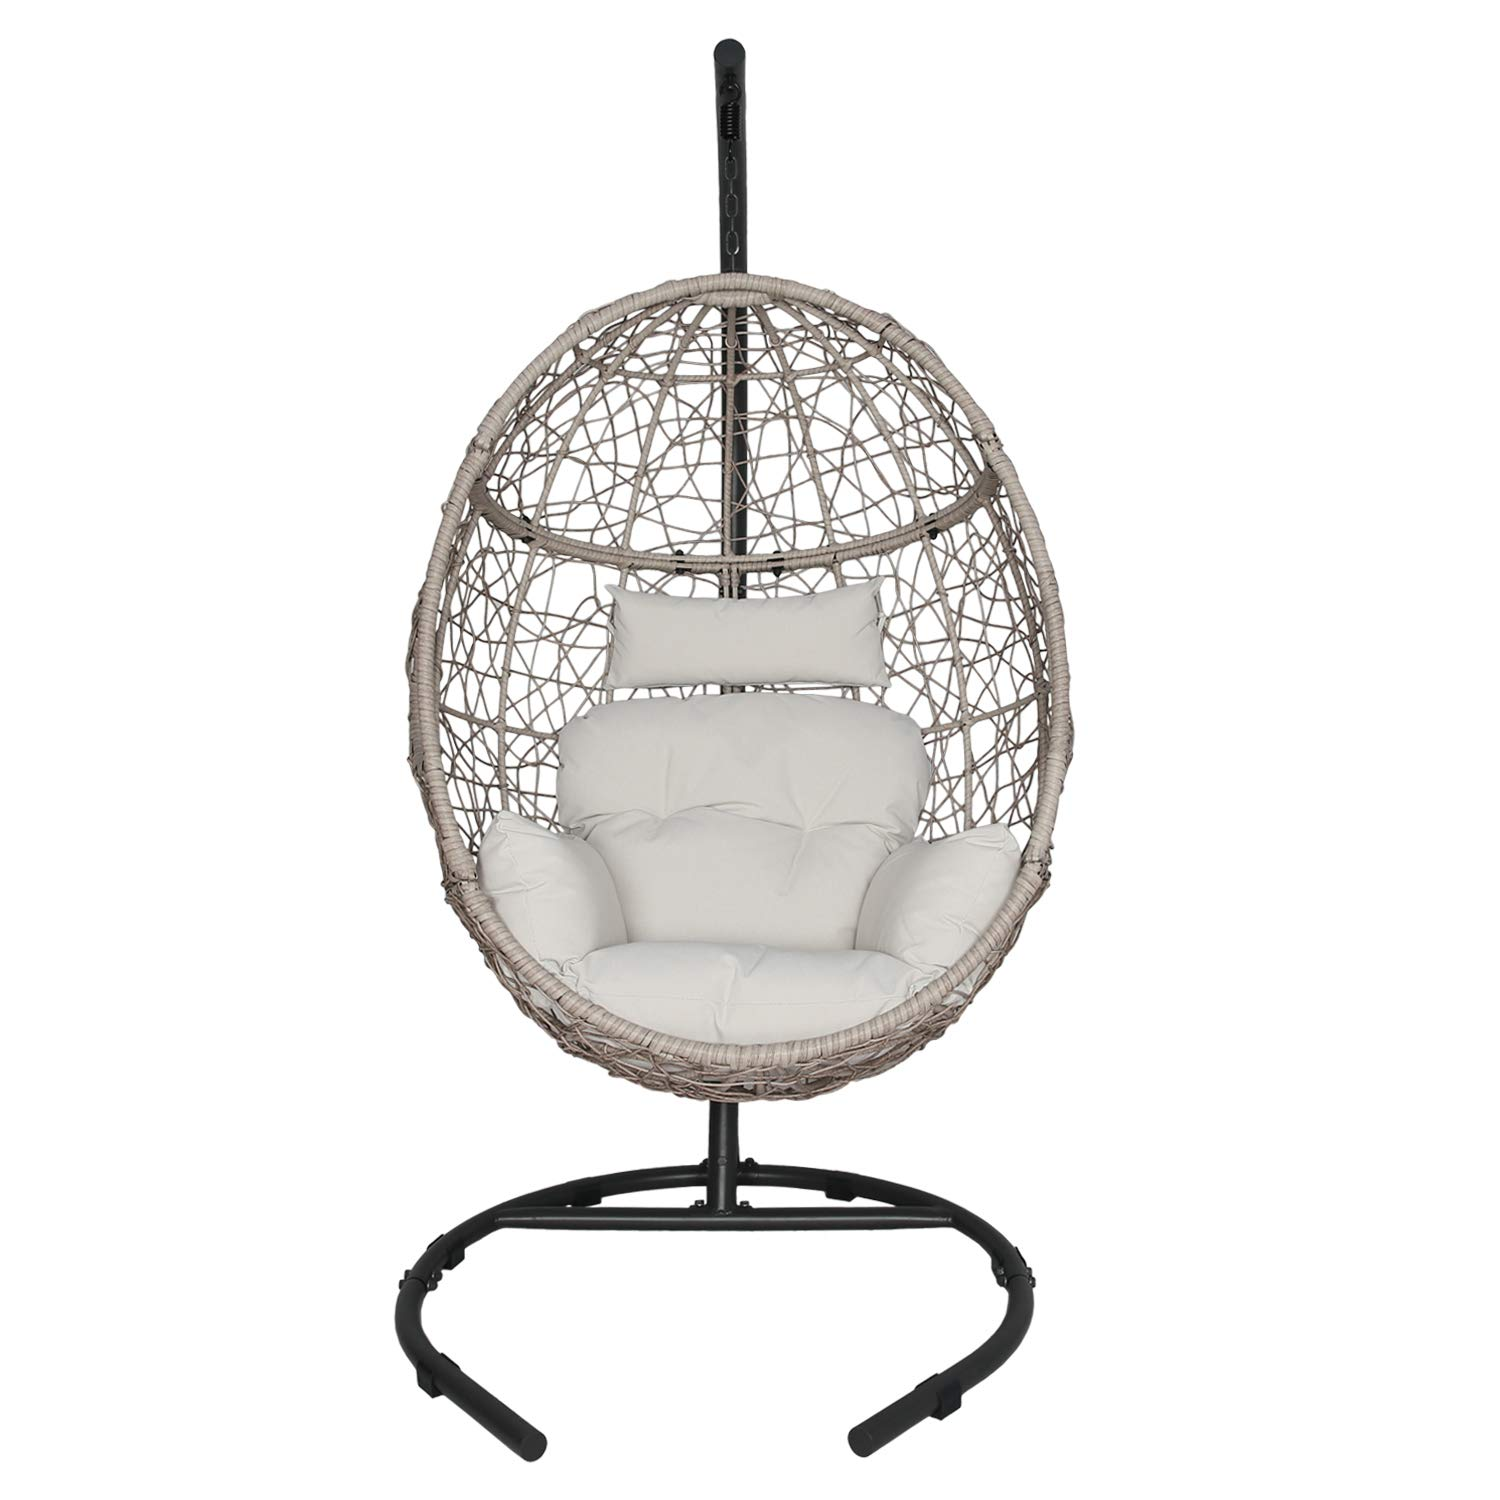 Ulax furniture Outdoor Patio Wicker Hanging Basket Swing Chair Tear Drop Egg Chair with Cushion and Stand (Beige)